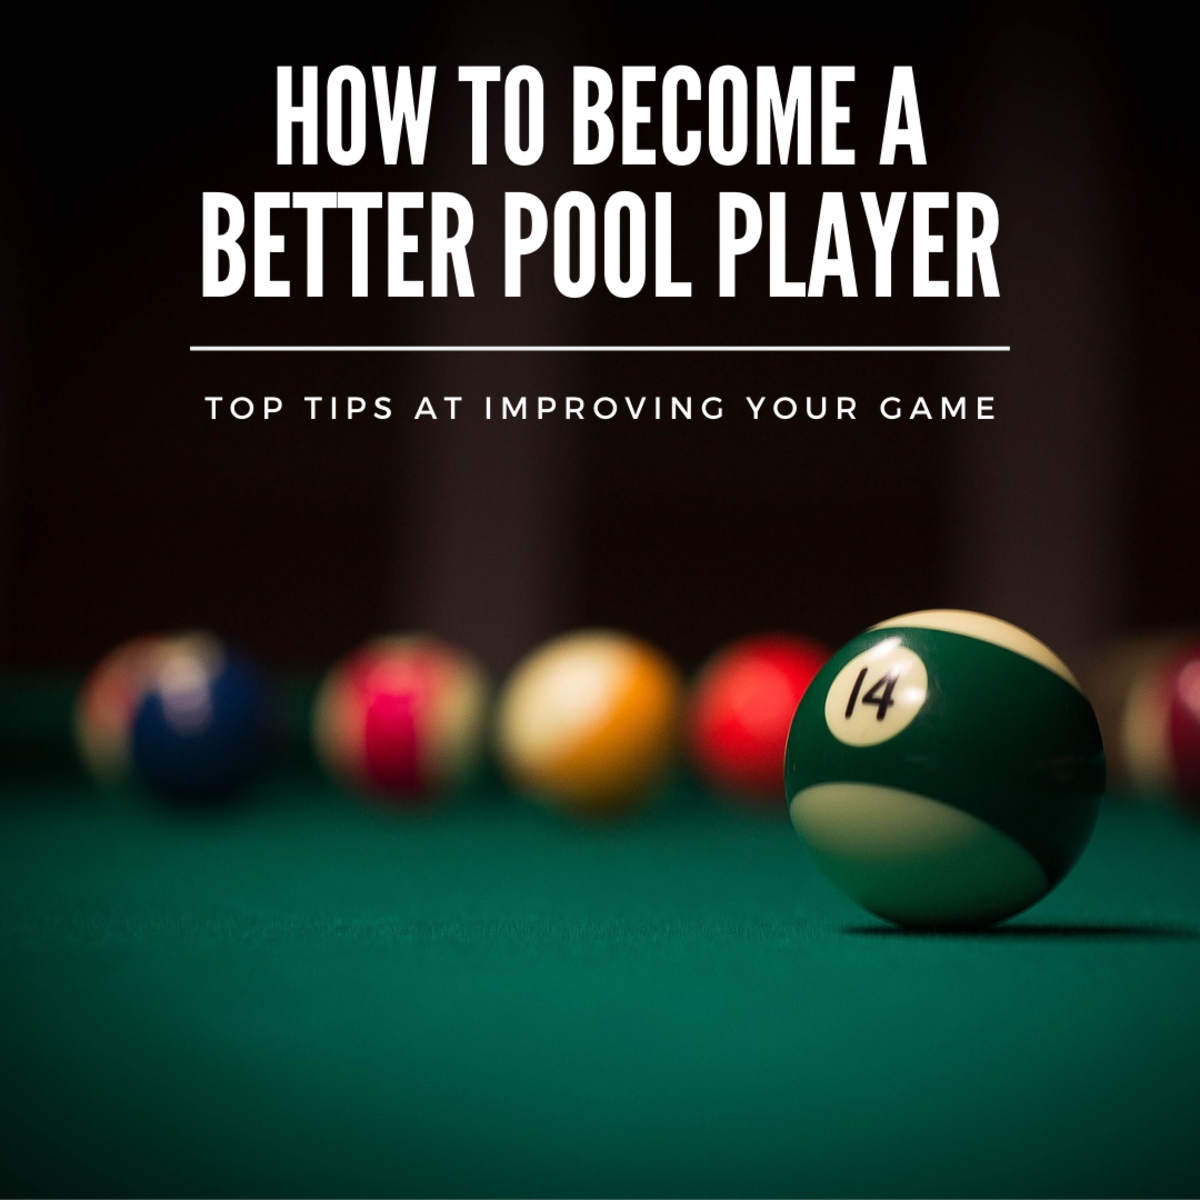 Learn how to get better at English 8 Ball (with the 'old' rules) with these helpful tips and tricks.